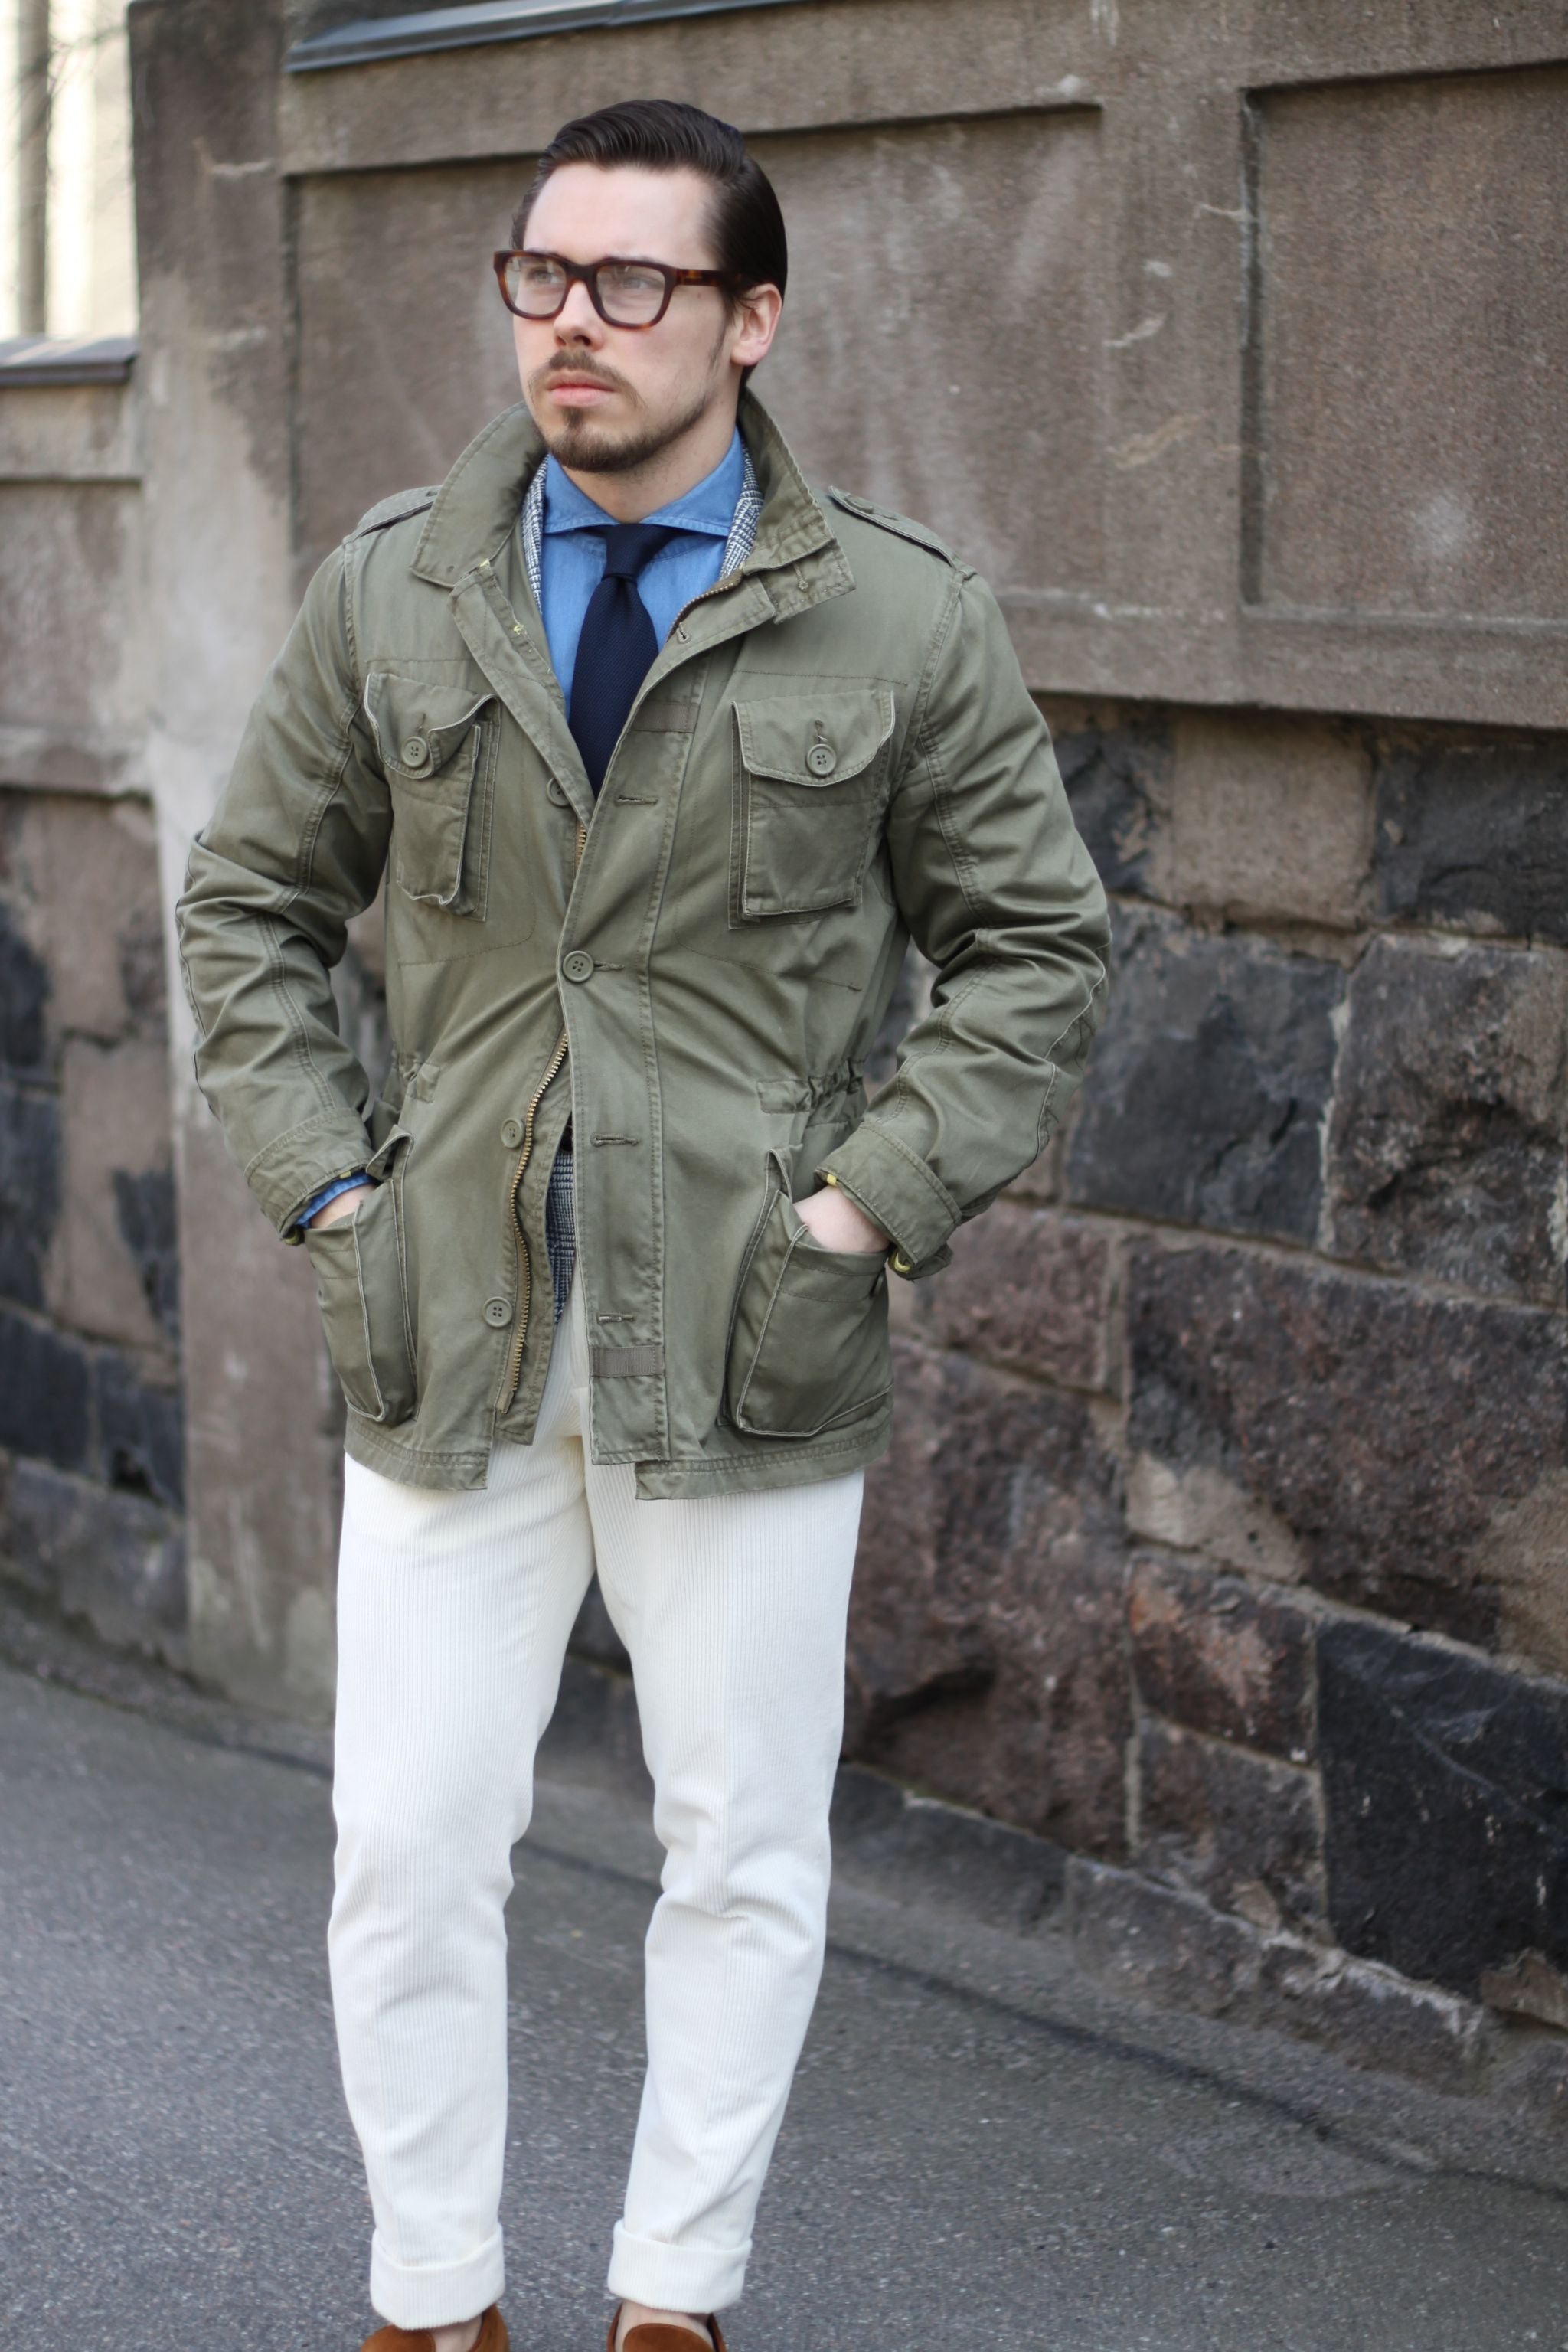 m65 field jacket with denim shirt and white trousers